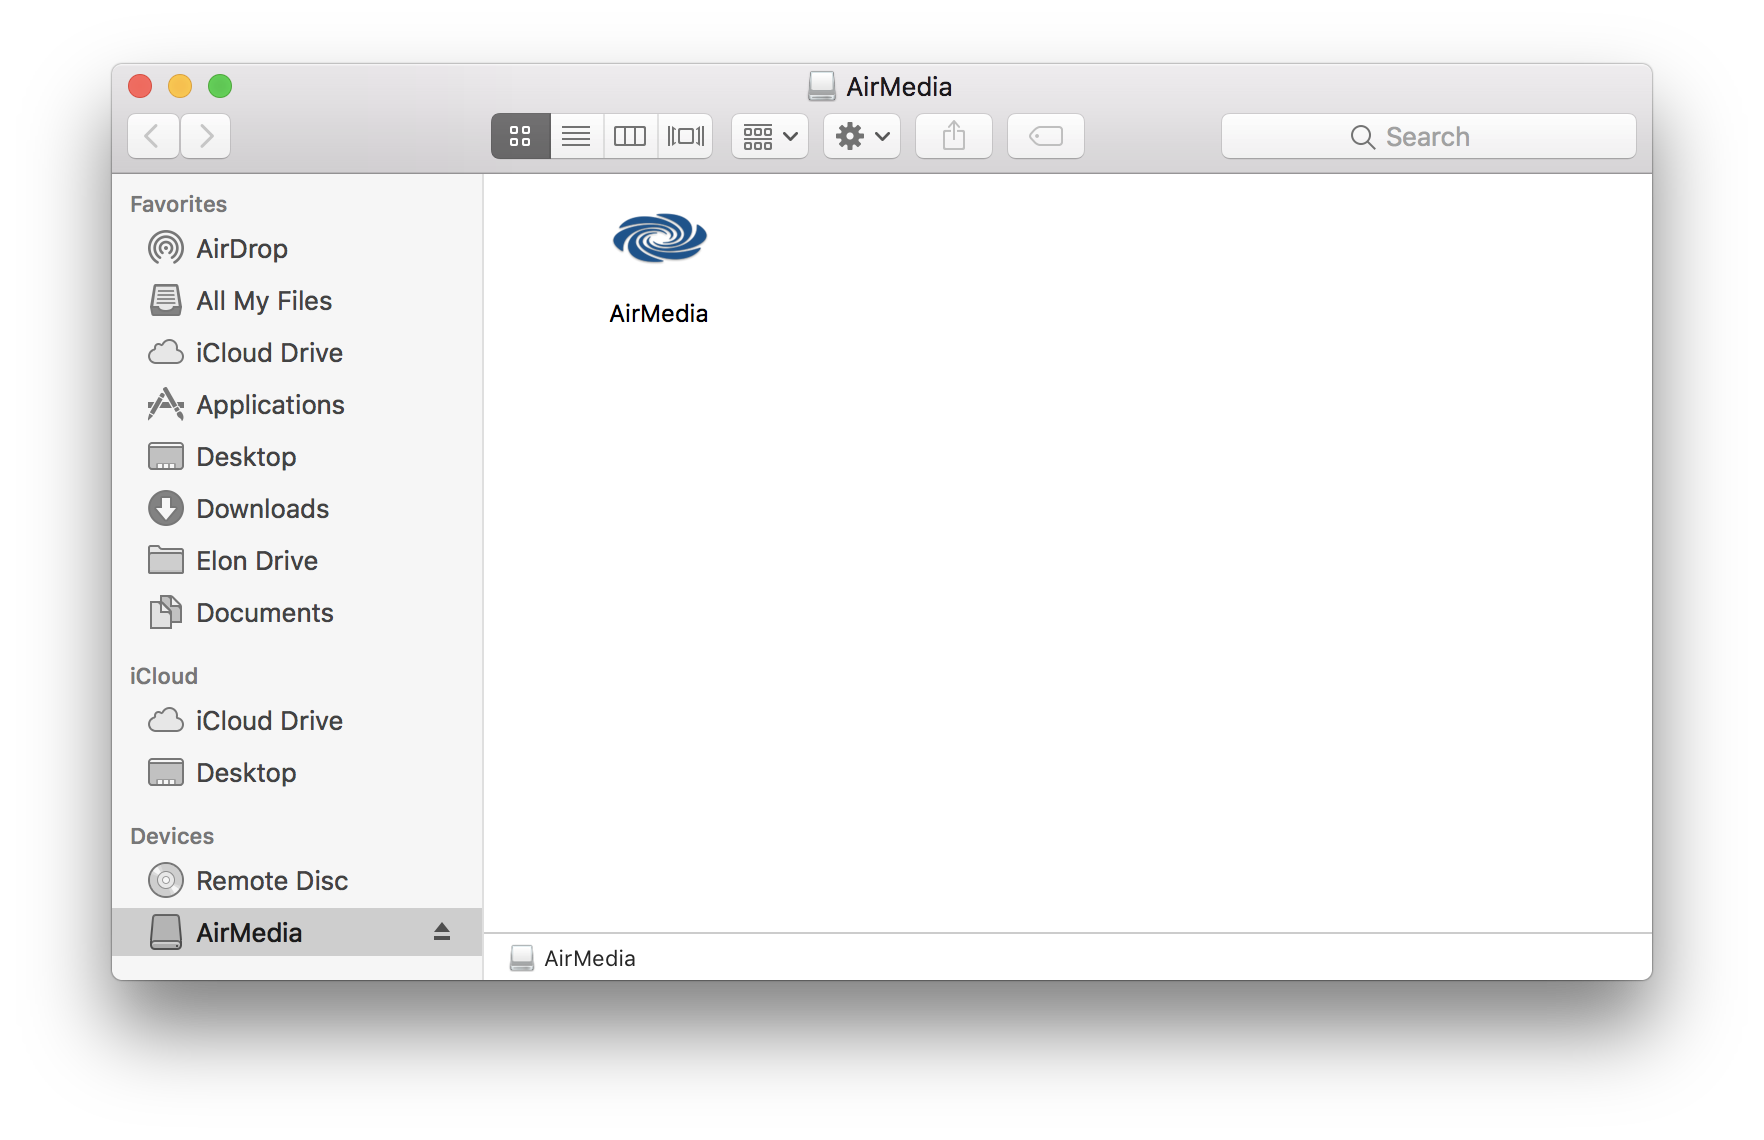 Photo of the install icon for AirMedia